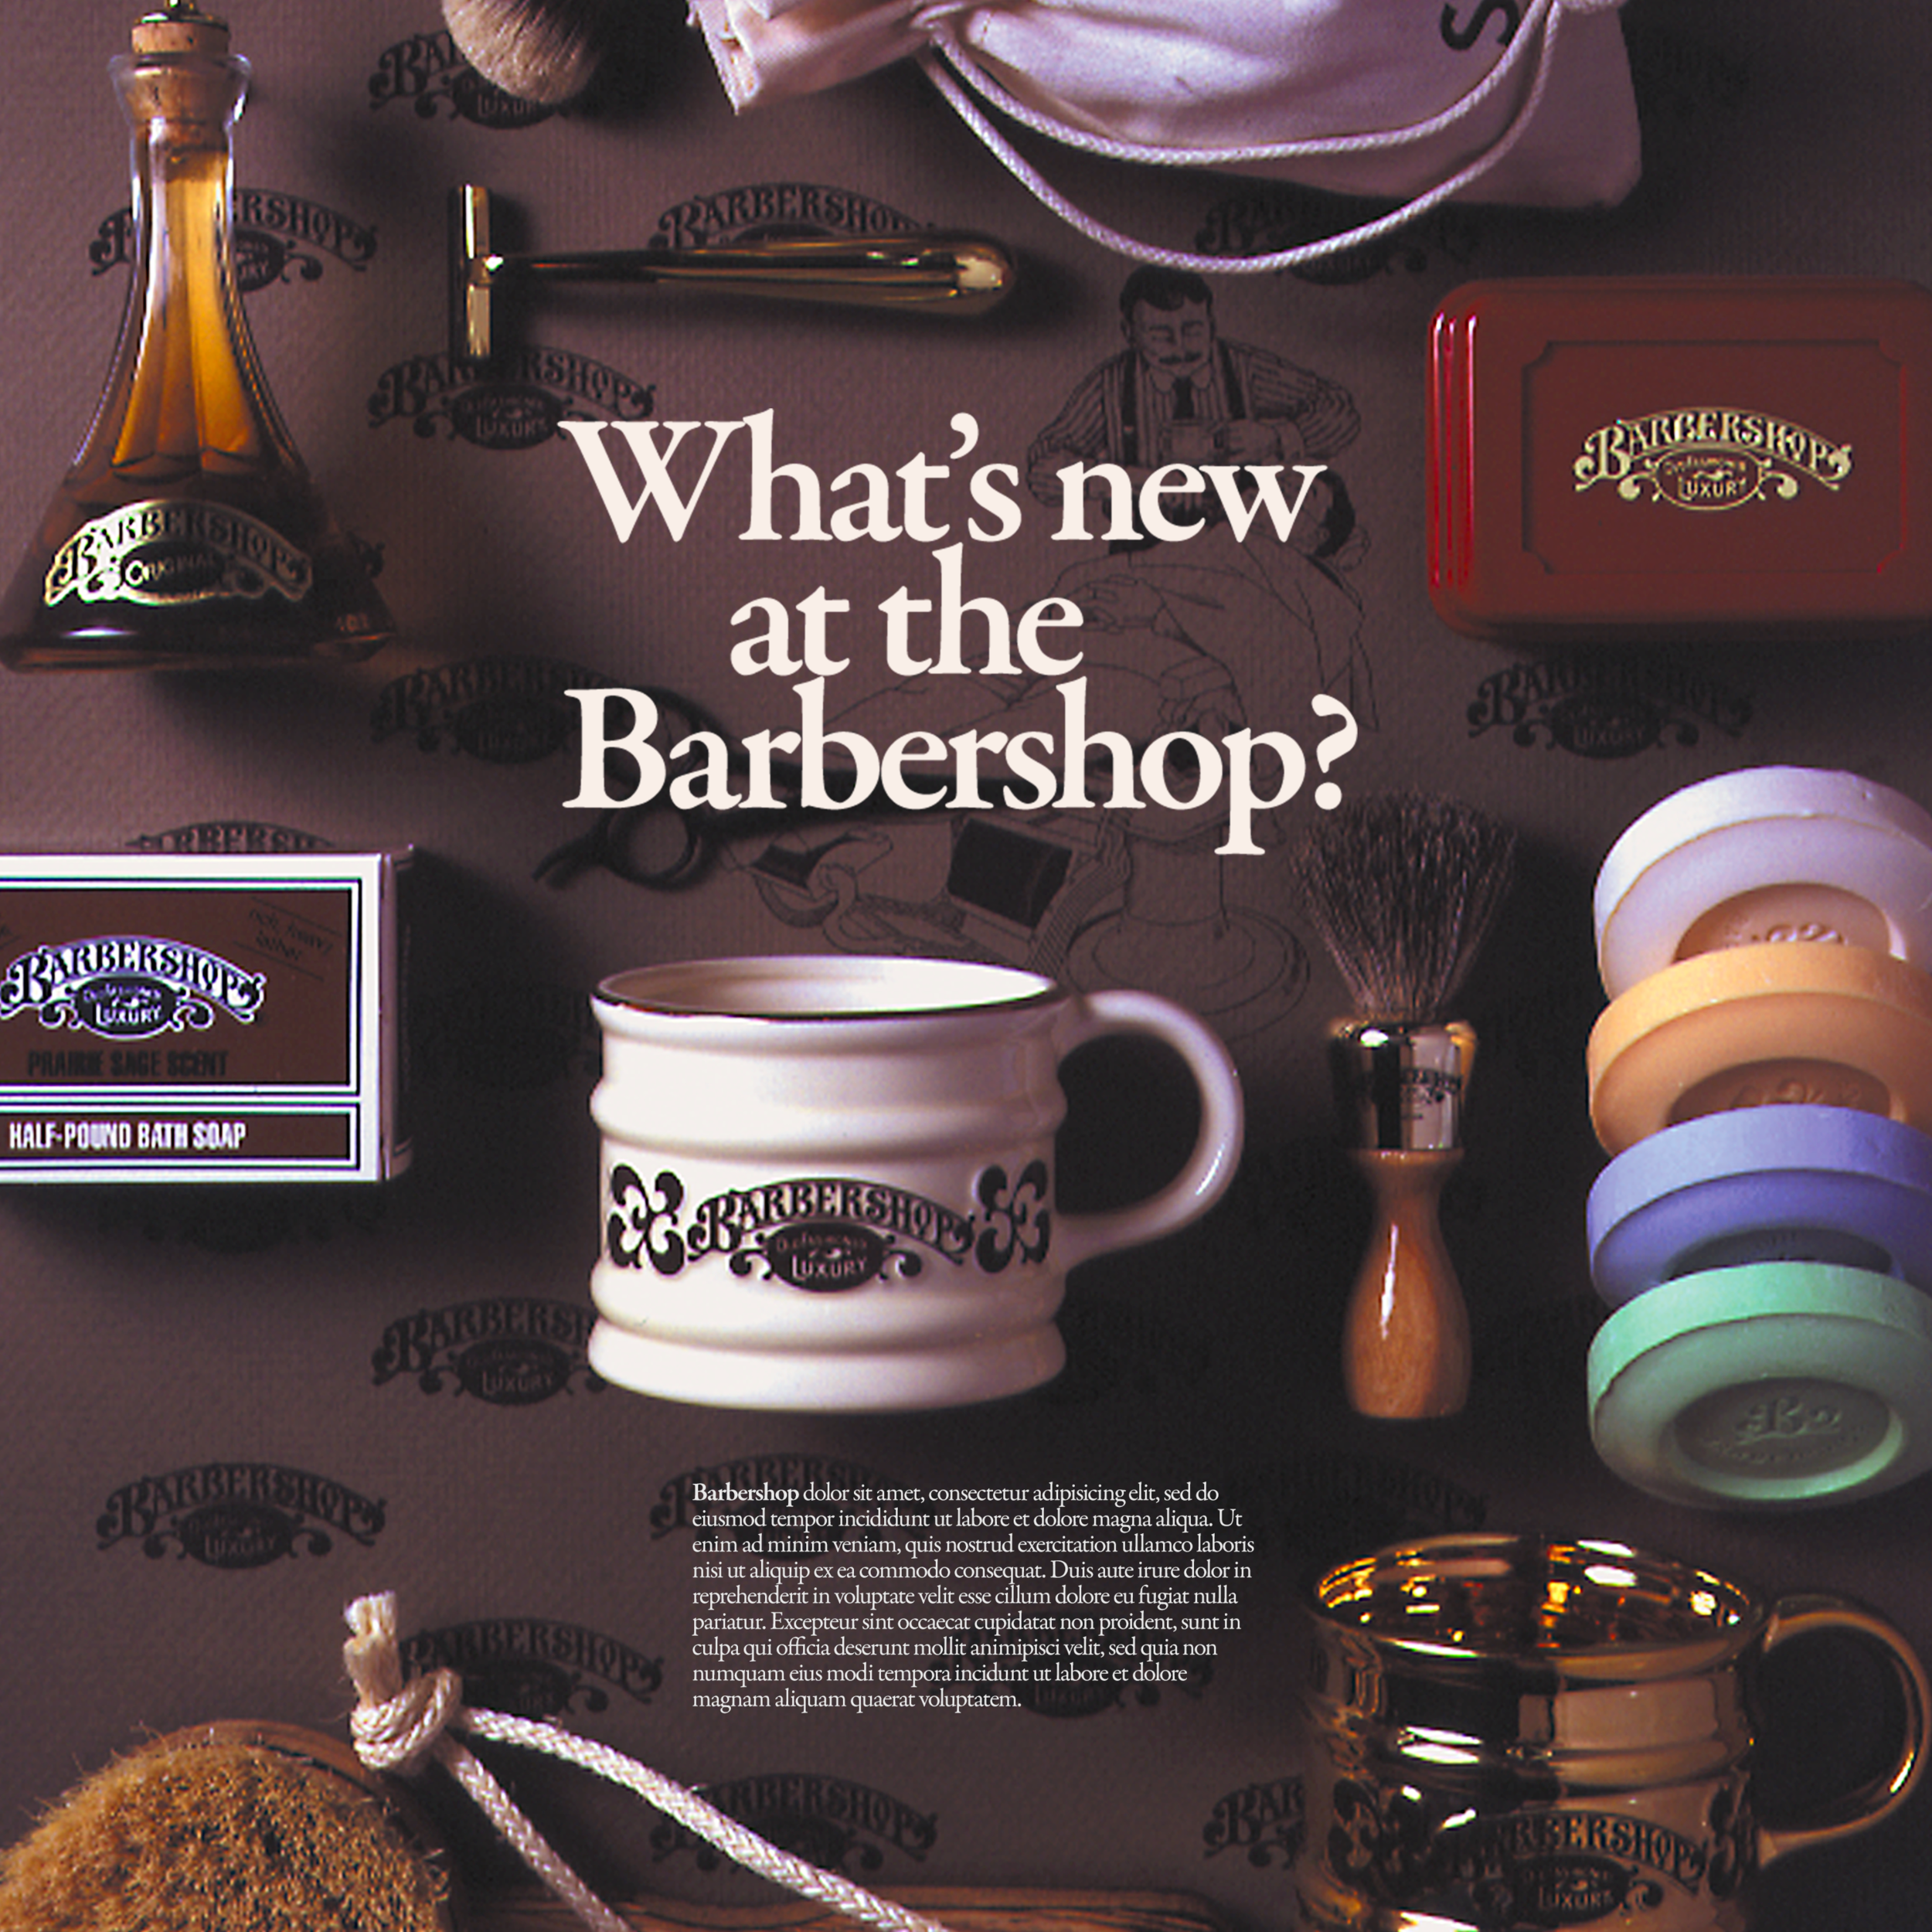 Franklin Toiletry Company   Beginning with the concept of bringing an old-fashioned shaving experience to the specialty gift market, the Barbershop brand quickly expanded. This growth required new packaging, catalogs, tear-sheets, advertising, and an expansion of the product line.